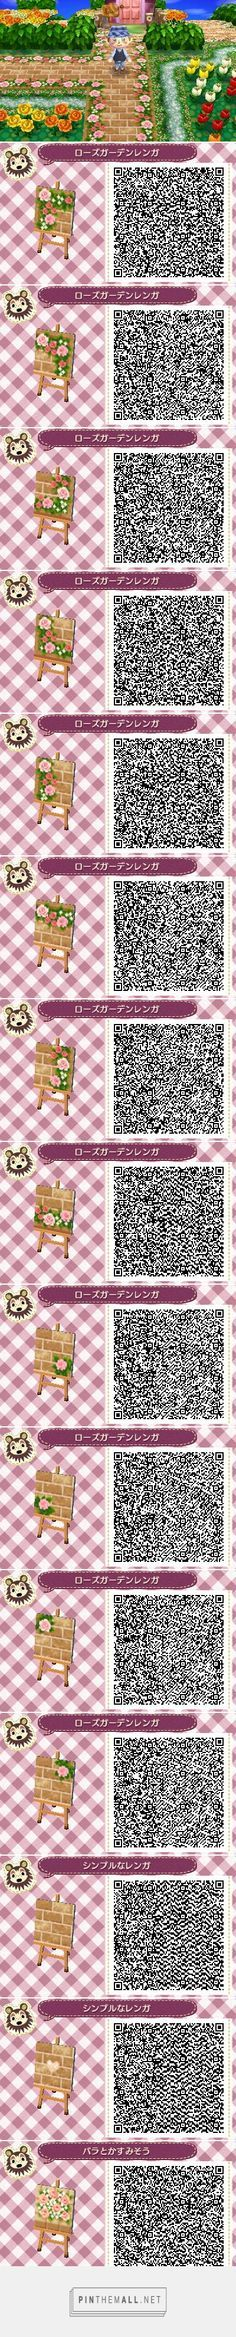 ACNL/ACHHD QR CODE-Brick path with pink roses border and accents